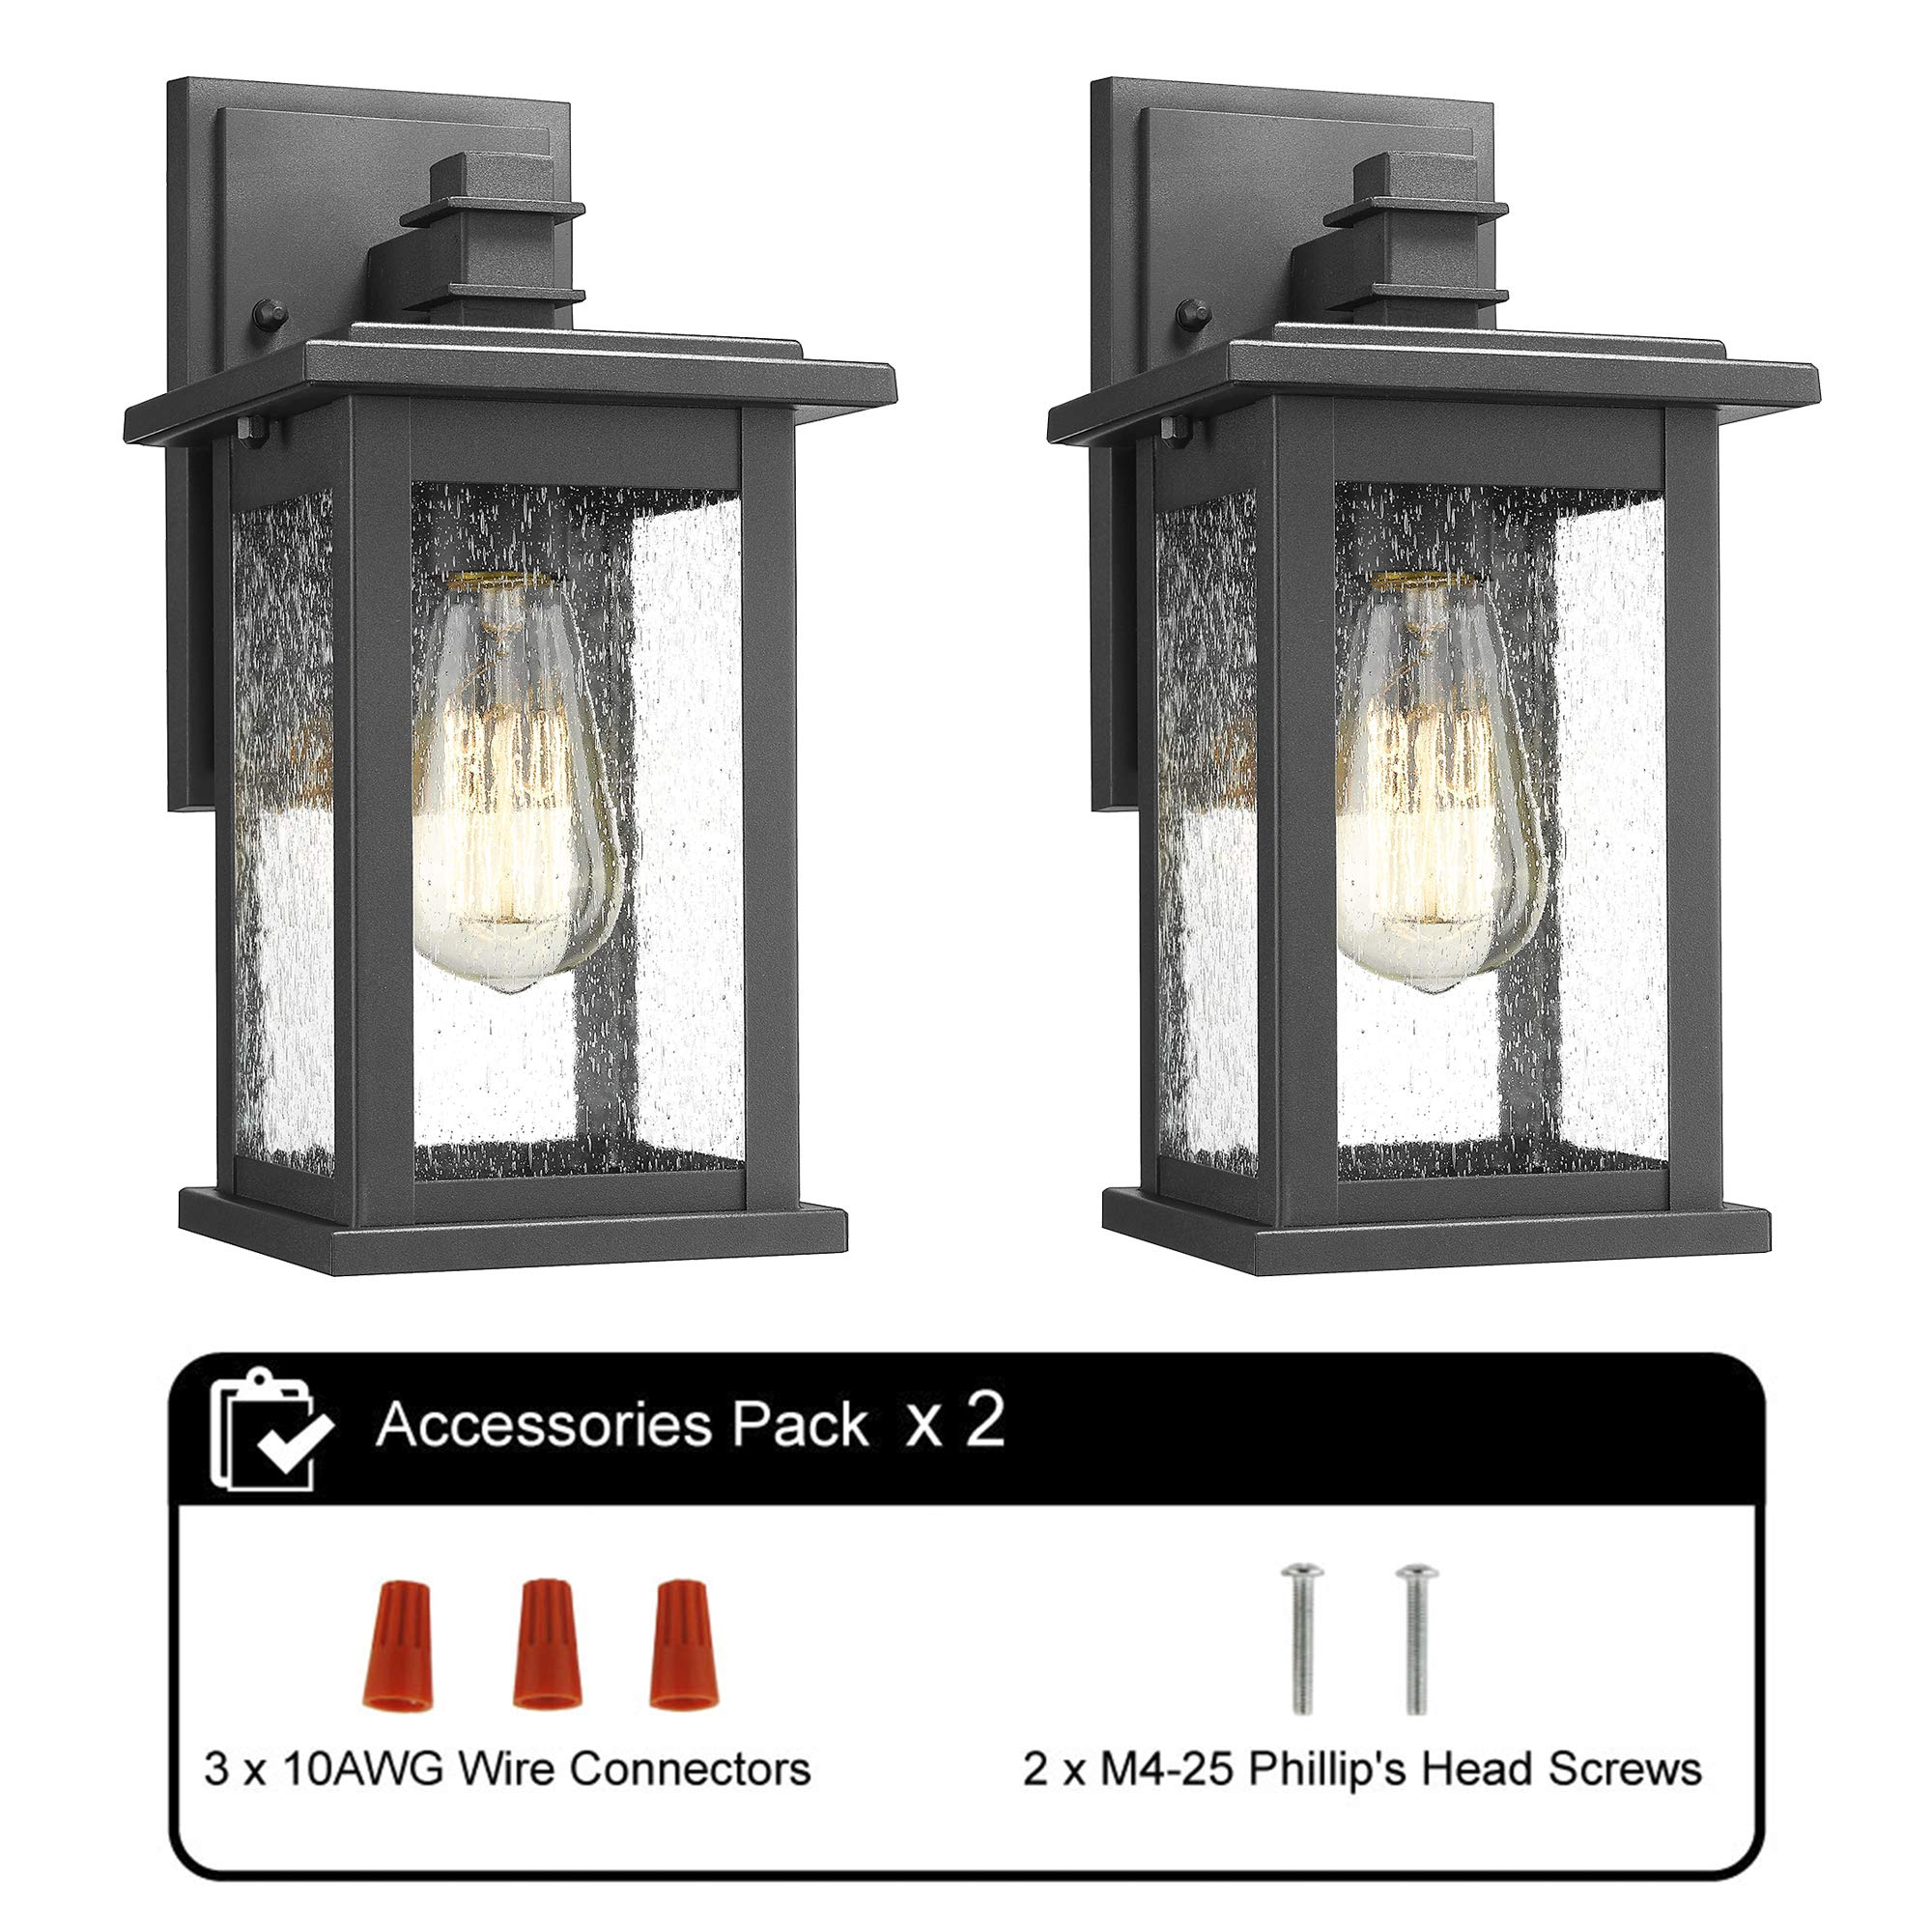 Emliviar Outdoor Wall Mount Lights 2 Pack, 1-Light Exterior Sconces Lantern in Black Finish with Clear Seeded Glass, OS-1803EW1-2PK by EMLIVIAR (Image #8)